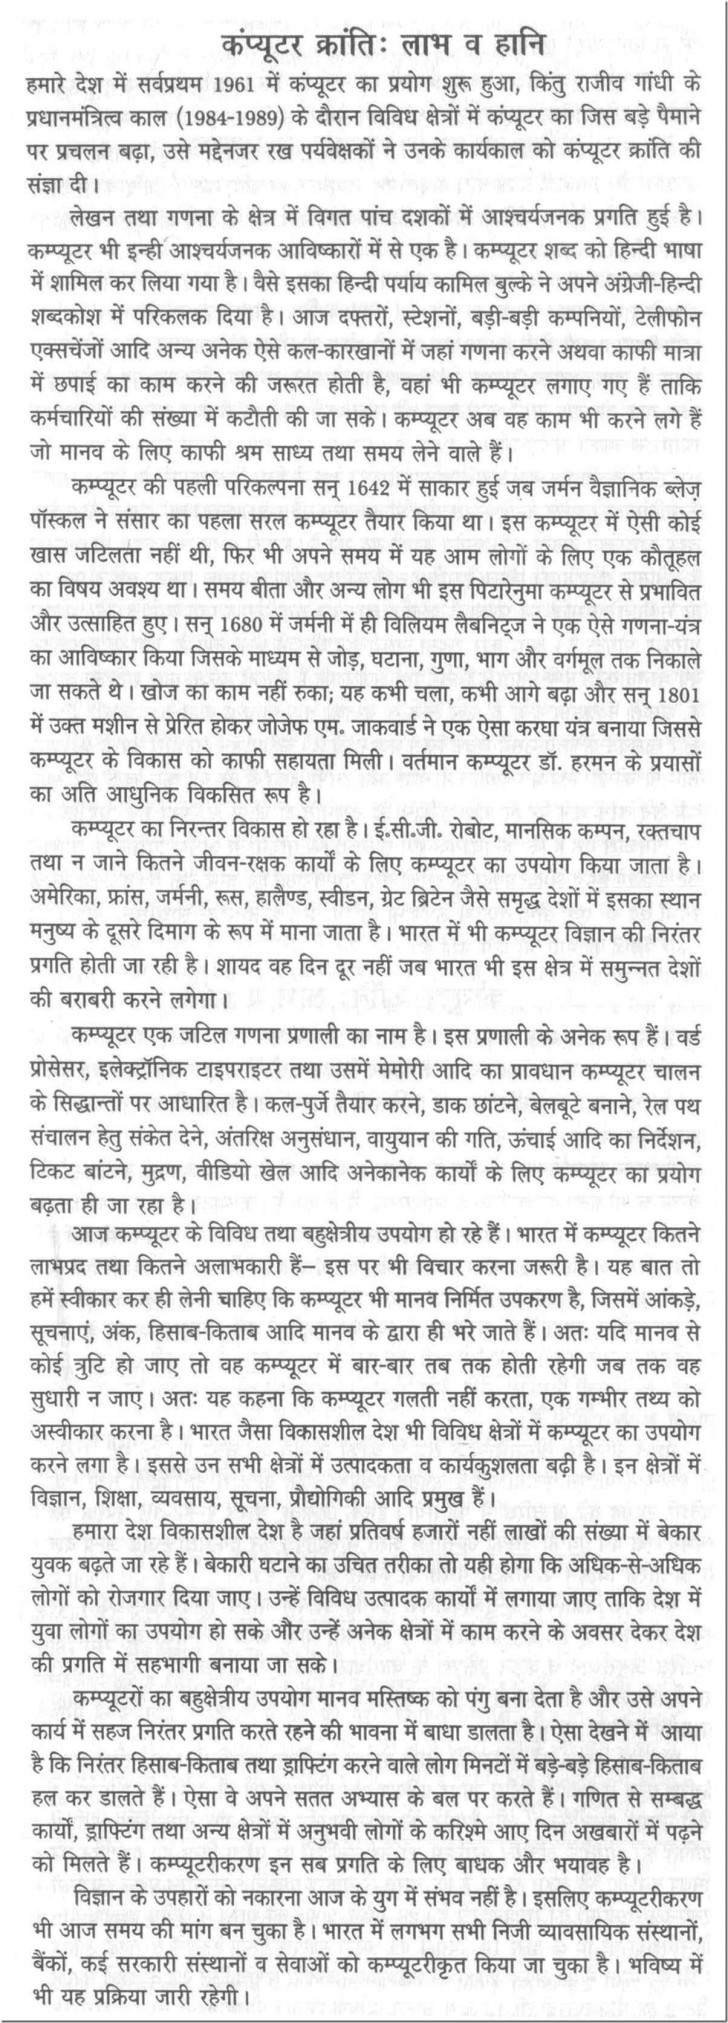 007 Essay Example 10008 Thumb Advantage And Disadvantage Of Shocking Science Advantages Disadvantages Pdf In Hindi English 728